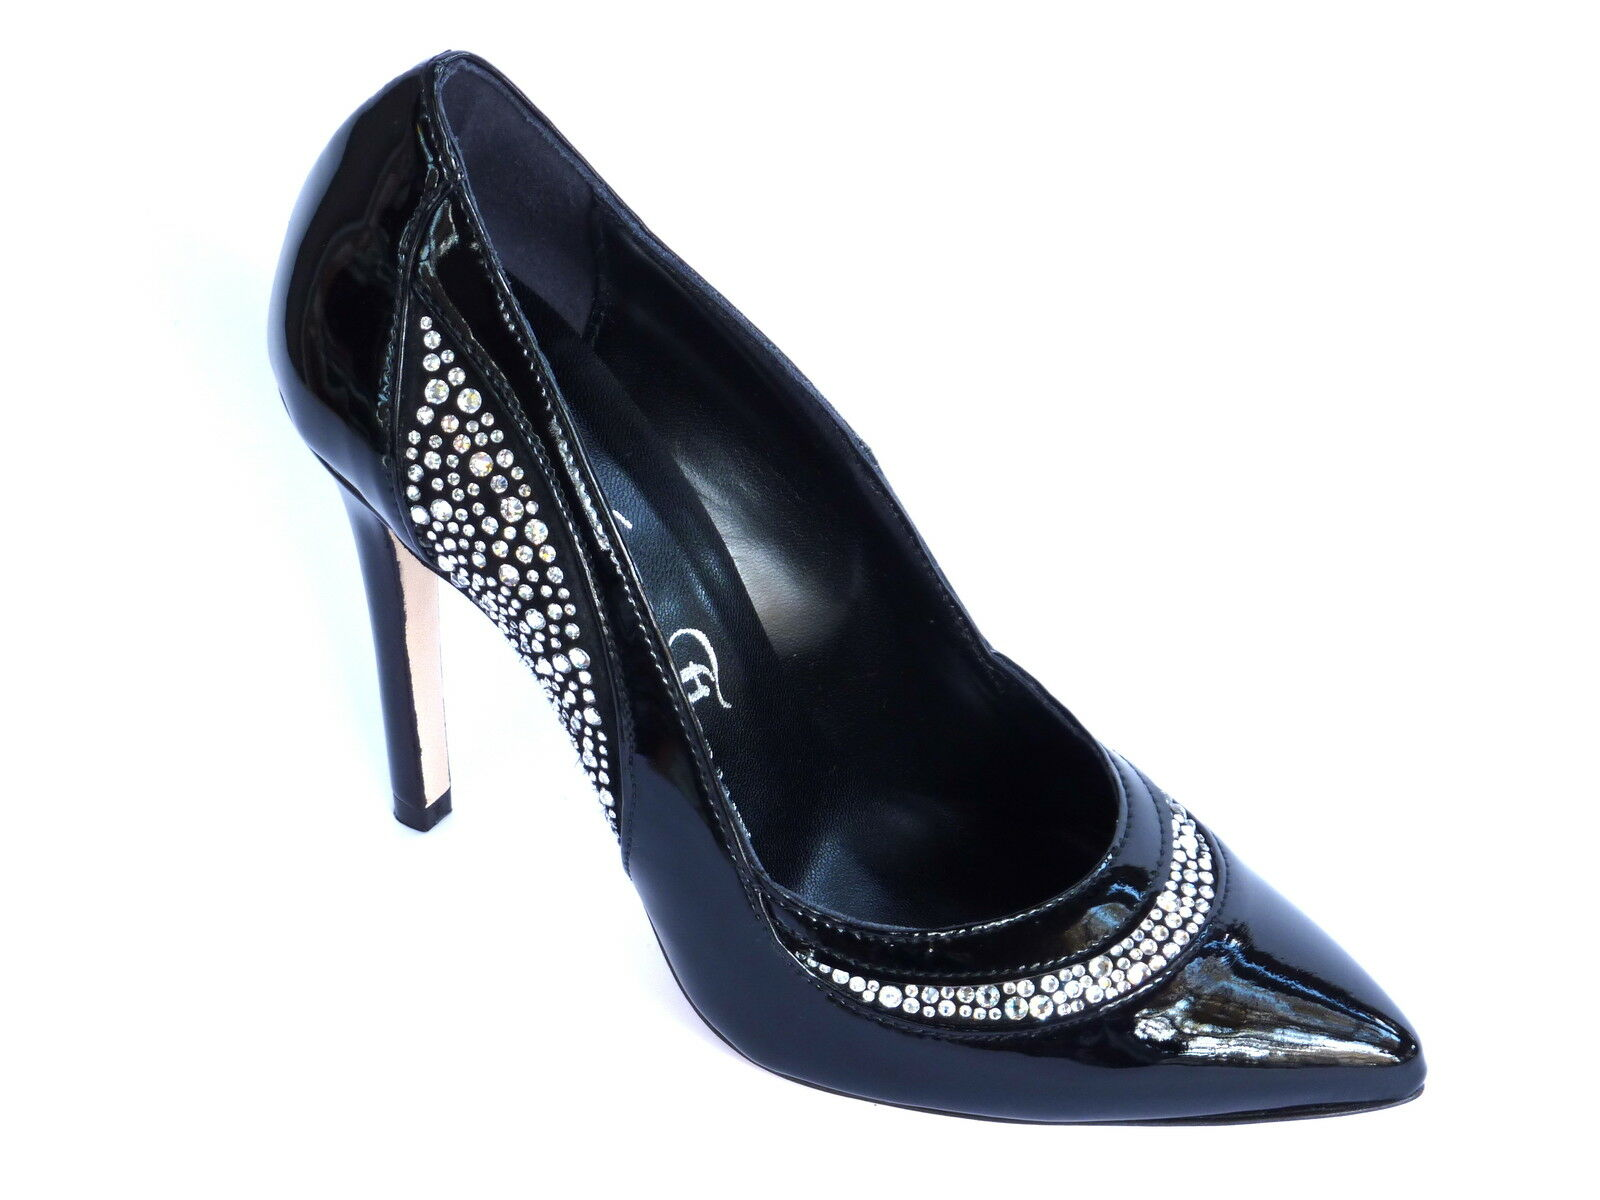 shoes DECOLLETTE women IN VERNICE black E SWAROVSKI ELEMENTS TACCO ALTO 39